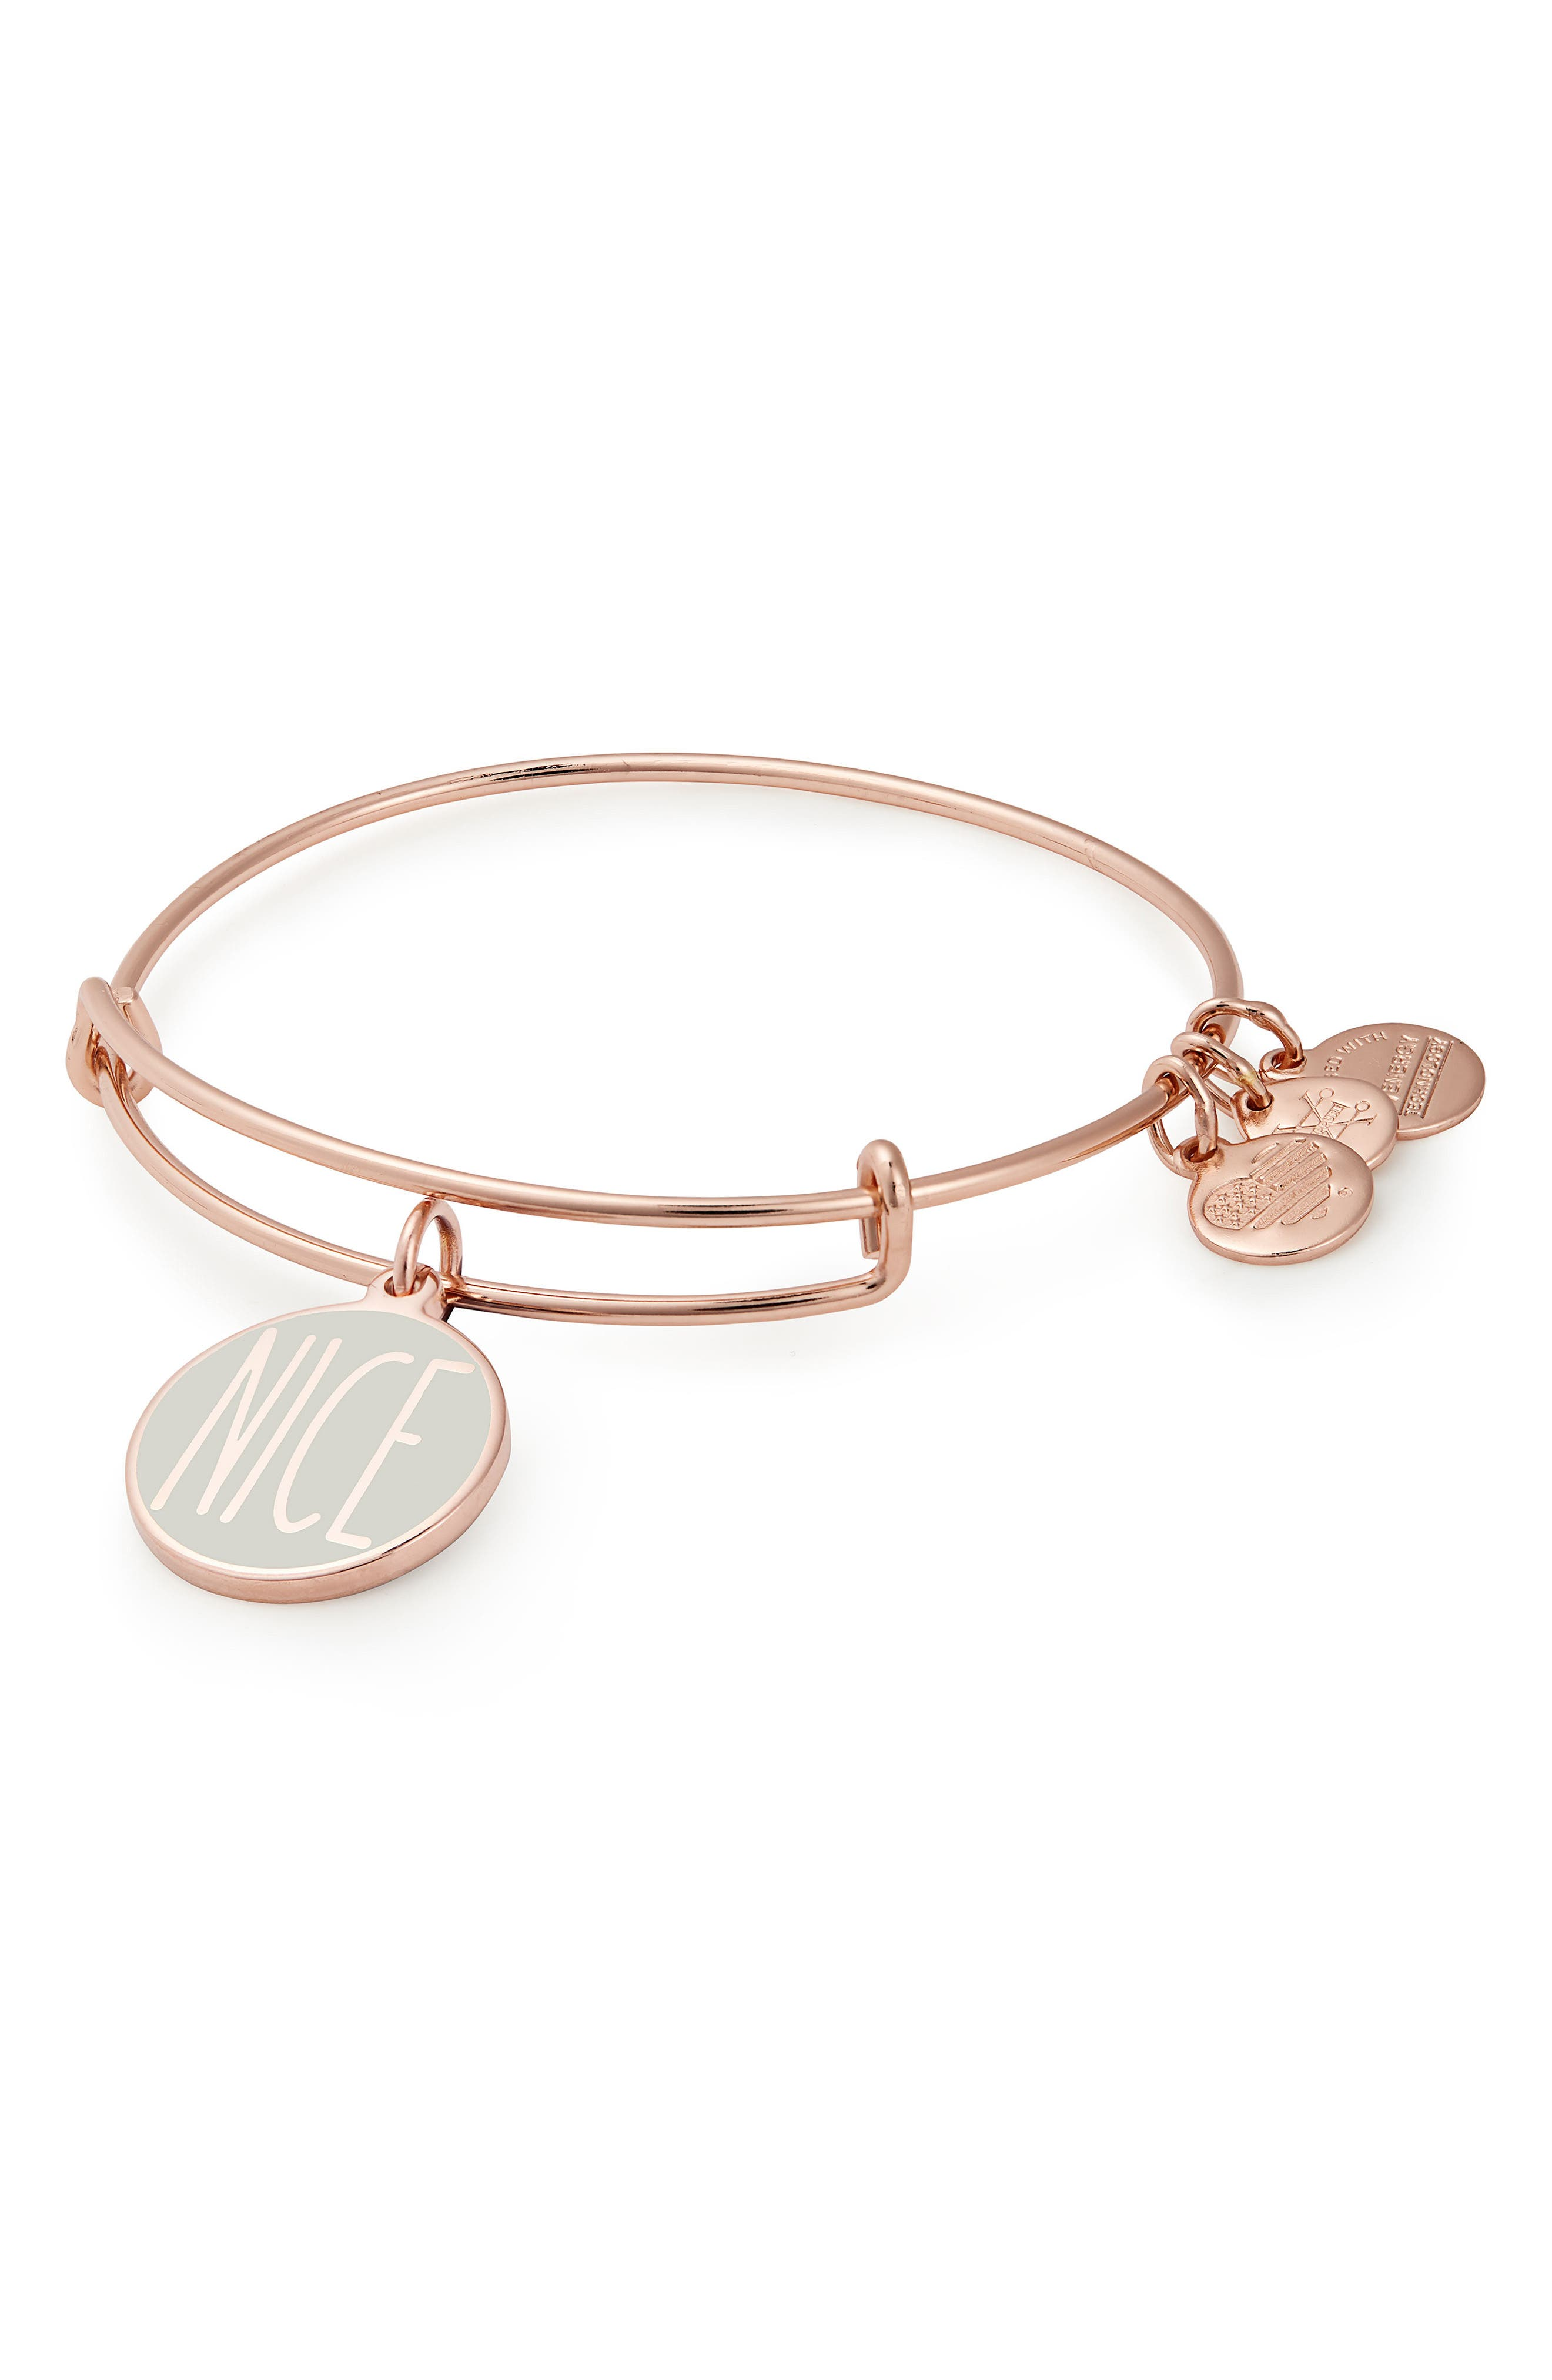 ALEX AND ANI, Words are Powerful - Naughty or Nice Bangle, Main thumbnail 1, color, 650